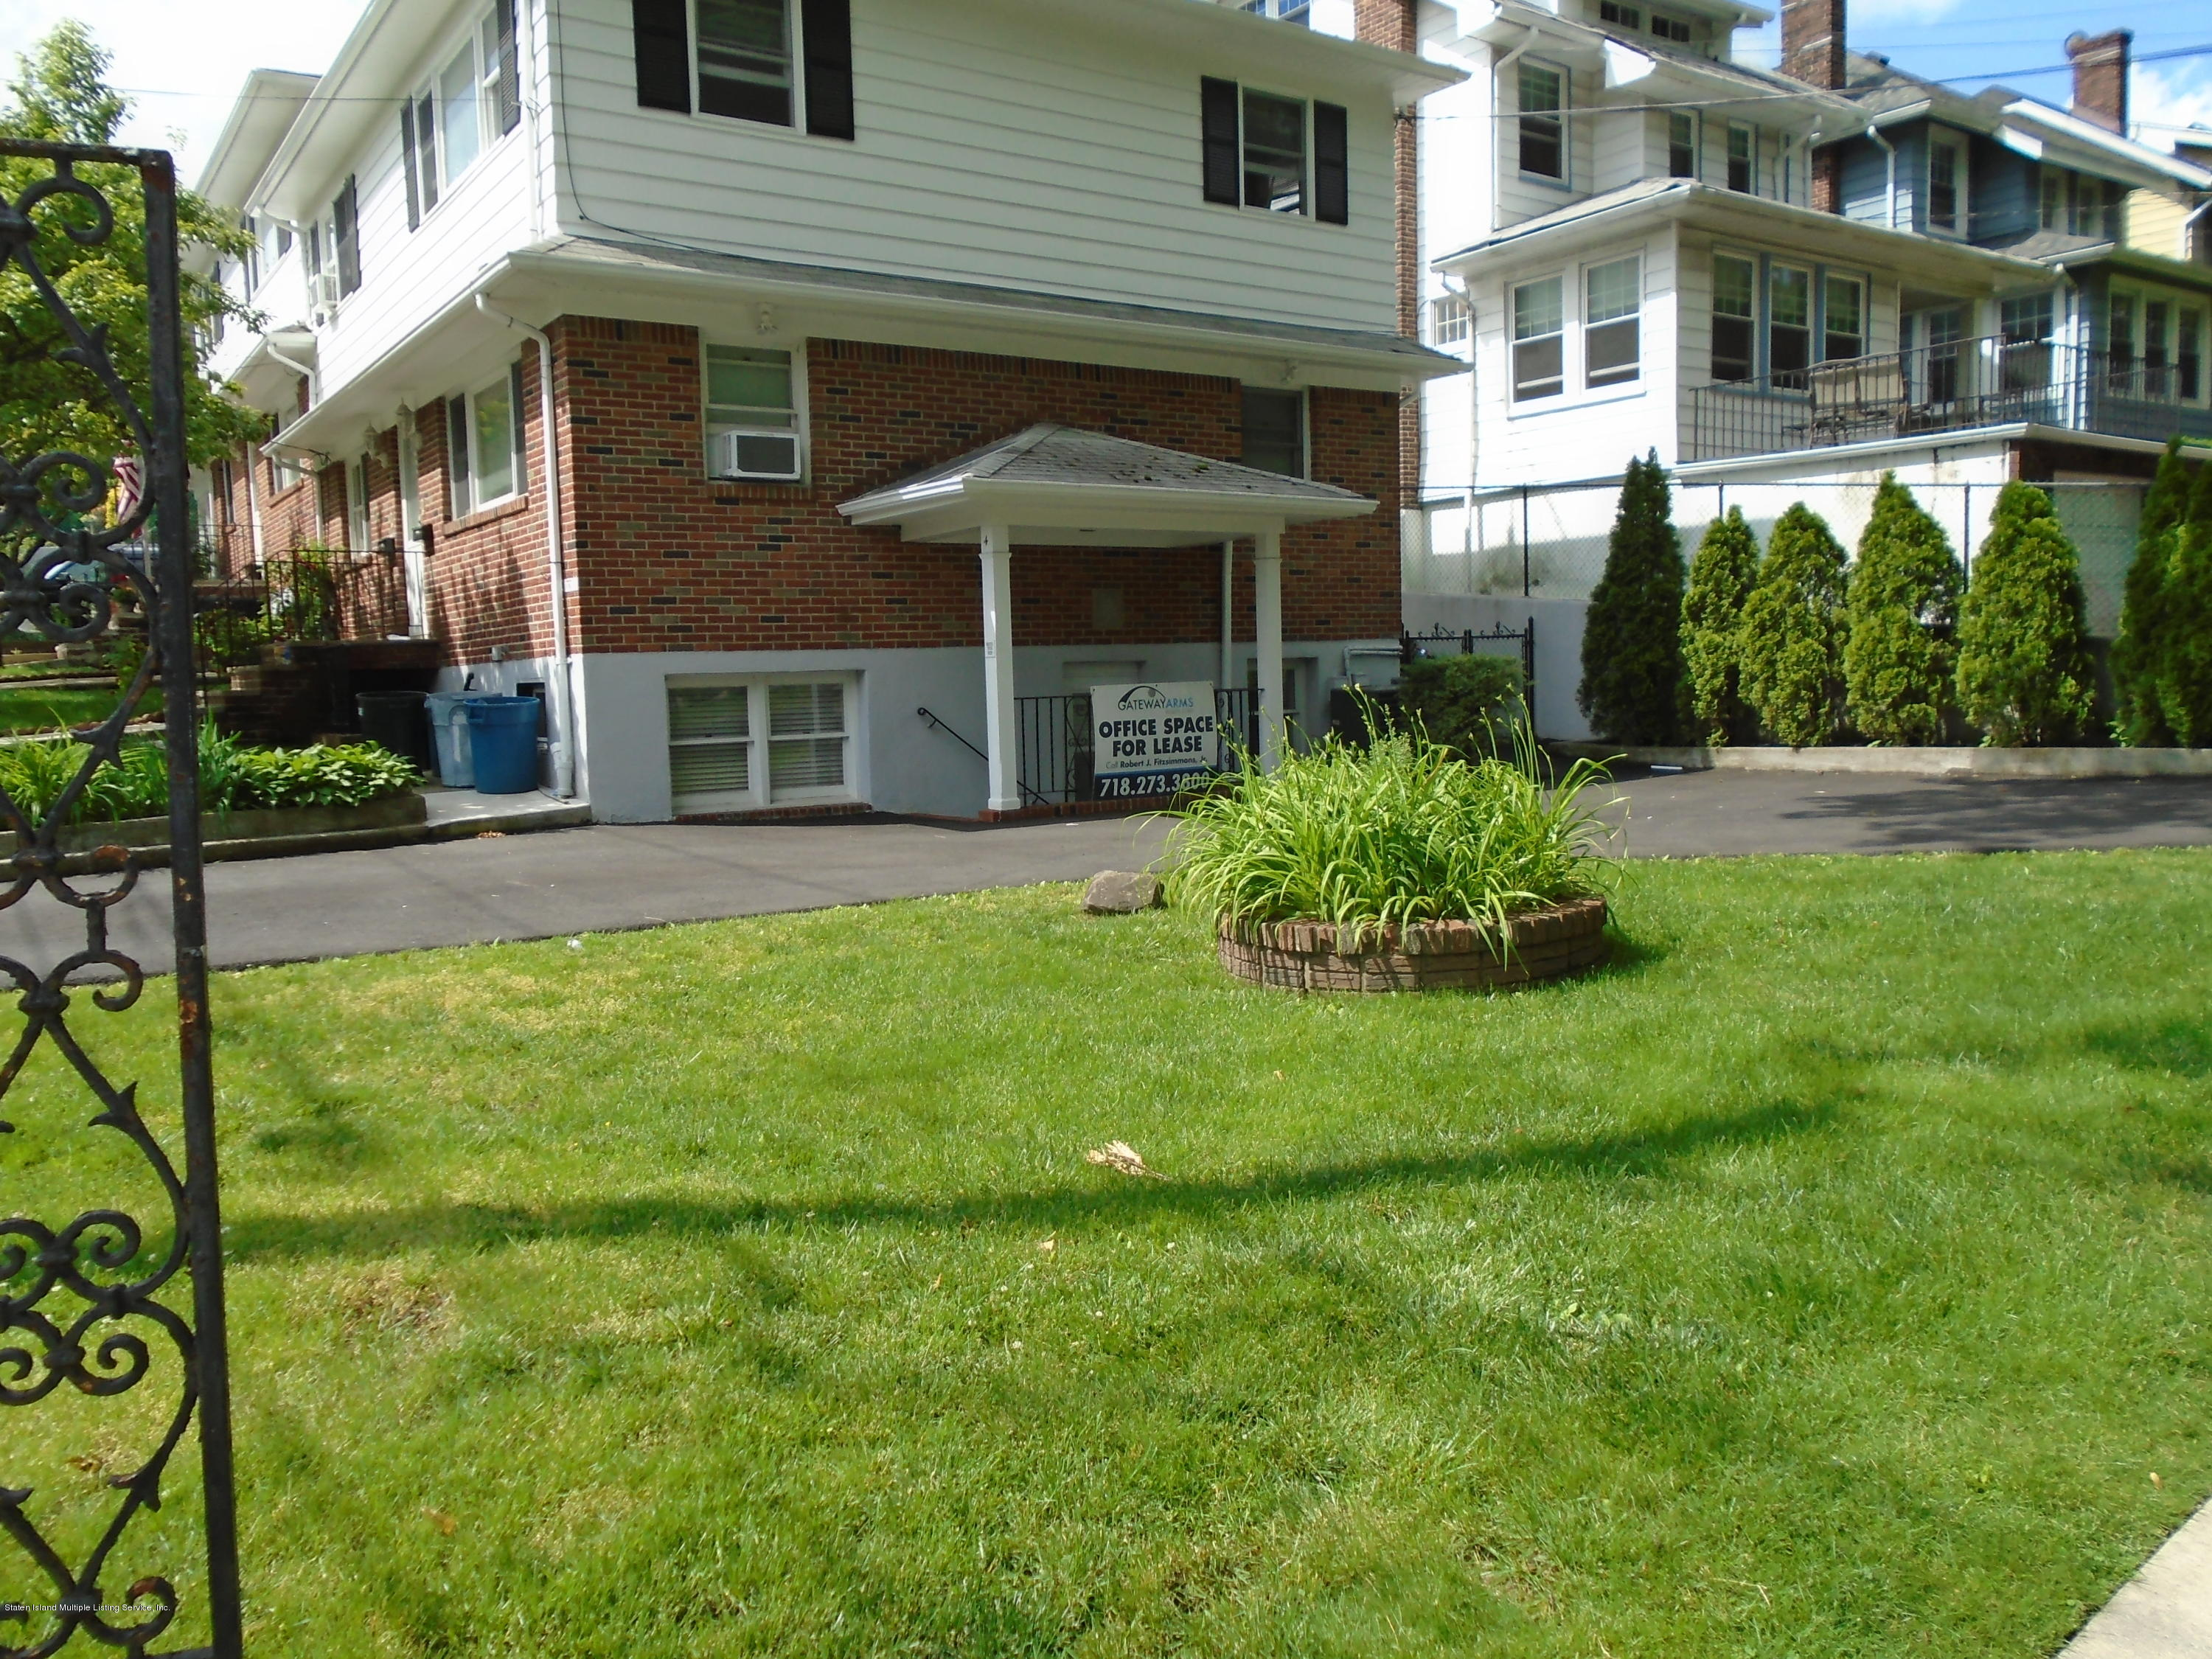 Two Family - Semi-Attached 4 University Place  Staten Island, NY 10301, MLS-1130572-15